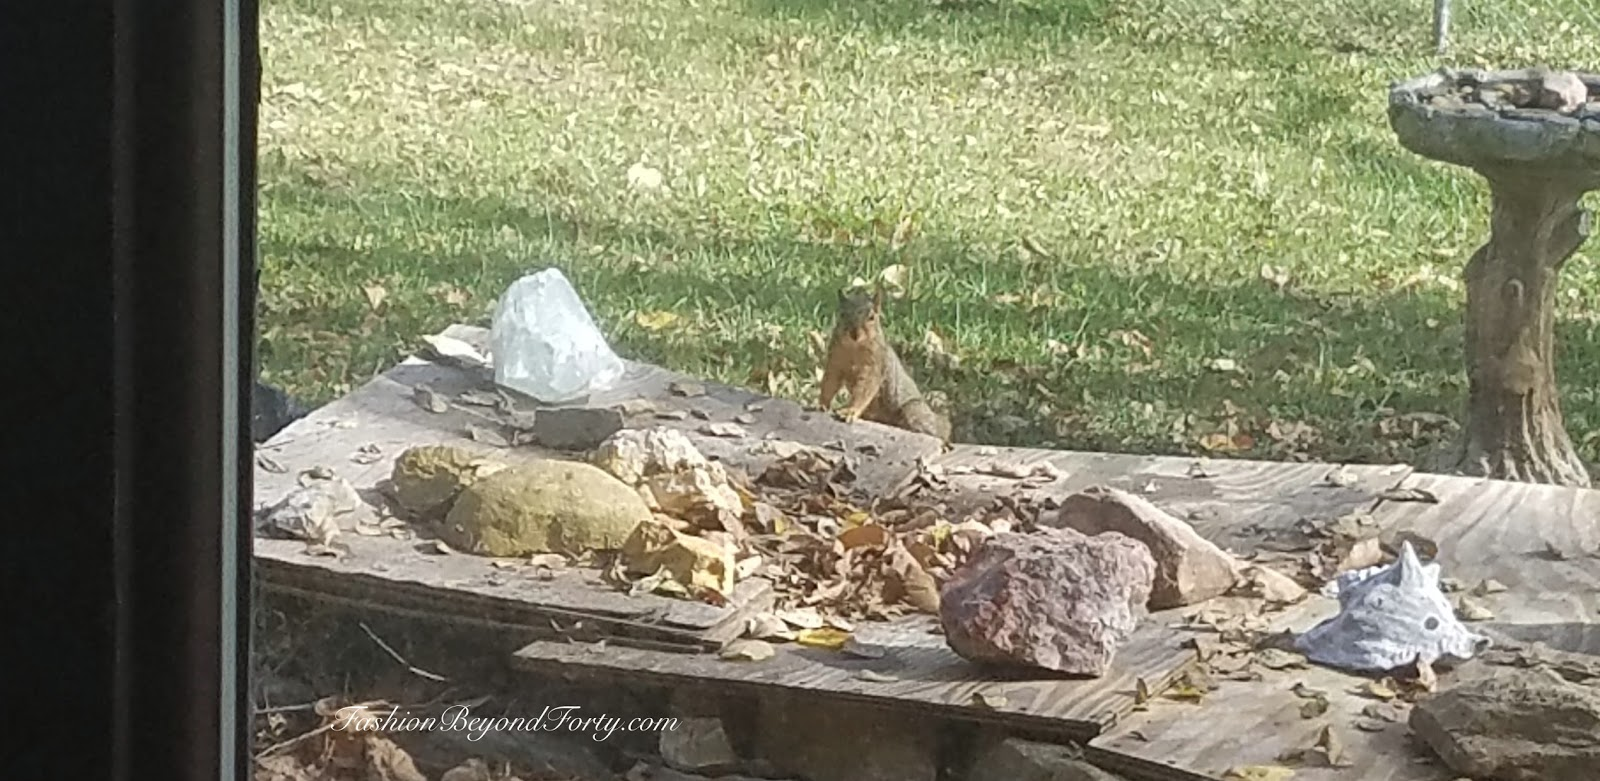 Two Nuts Harvesting Walnuts In The Fall Part Three - Final Post In The Series With Love To The Squirrels